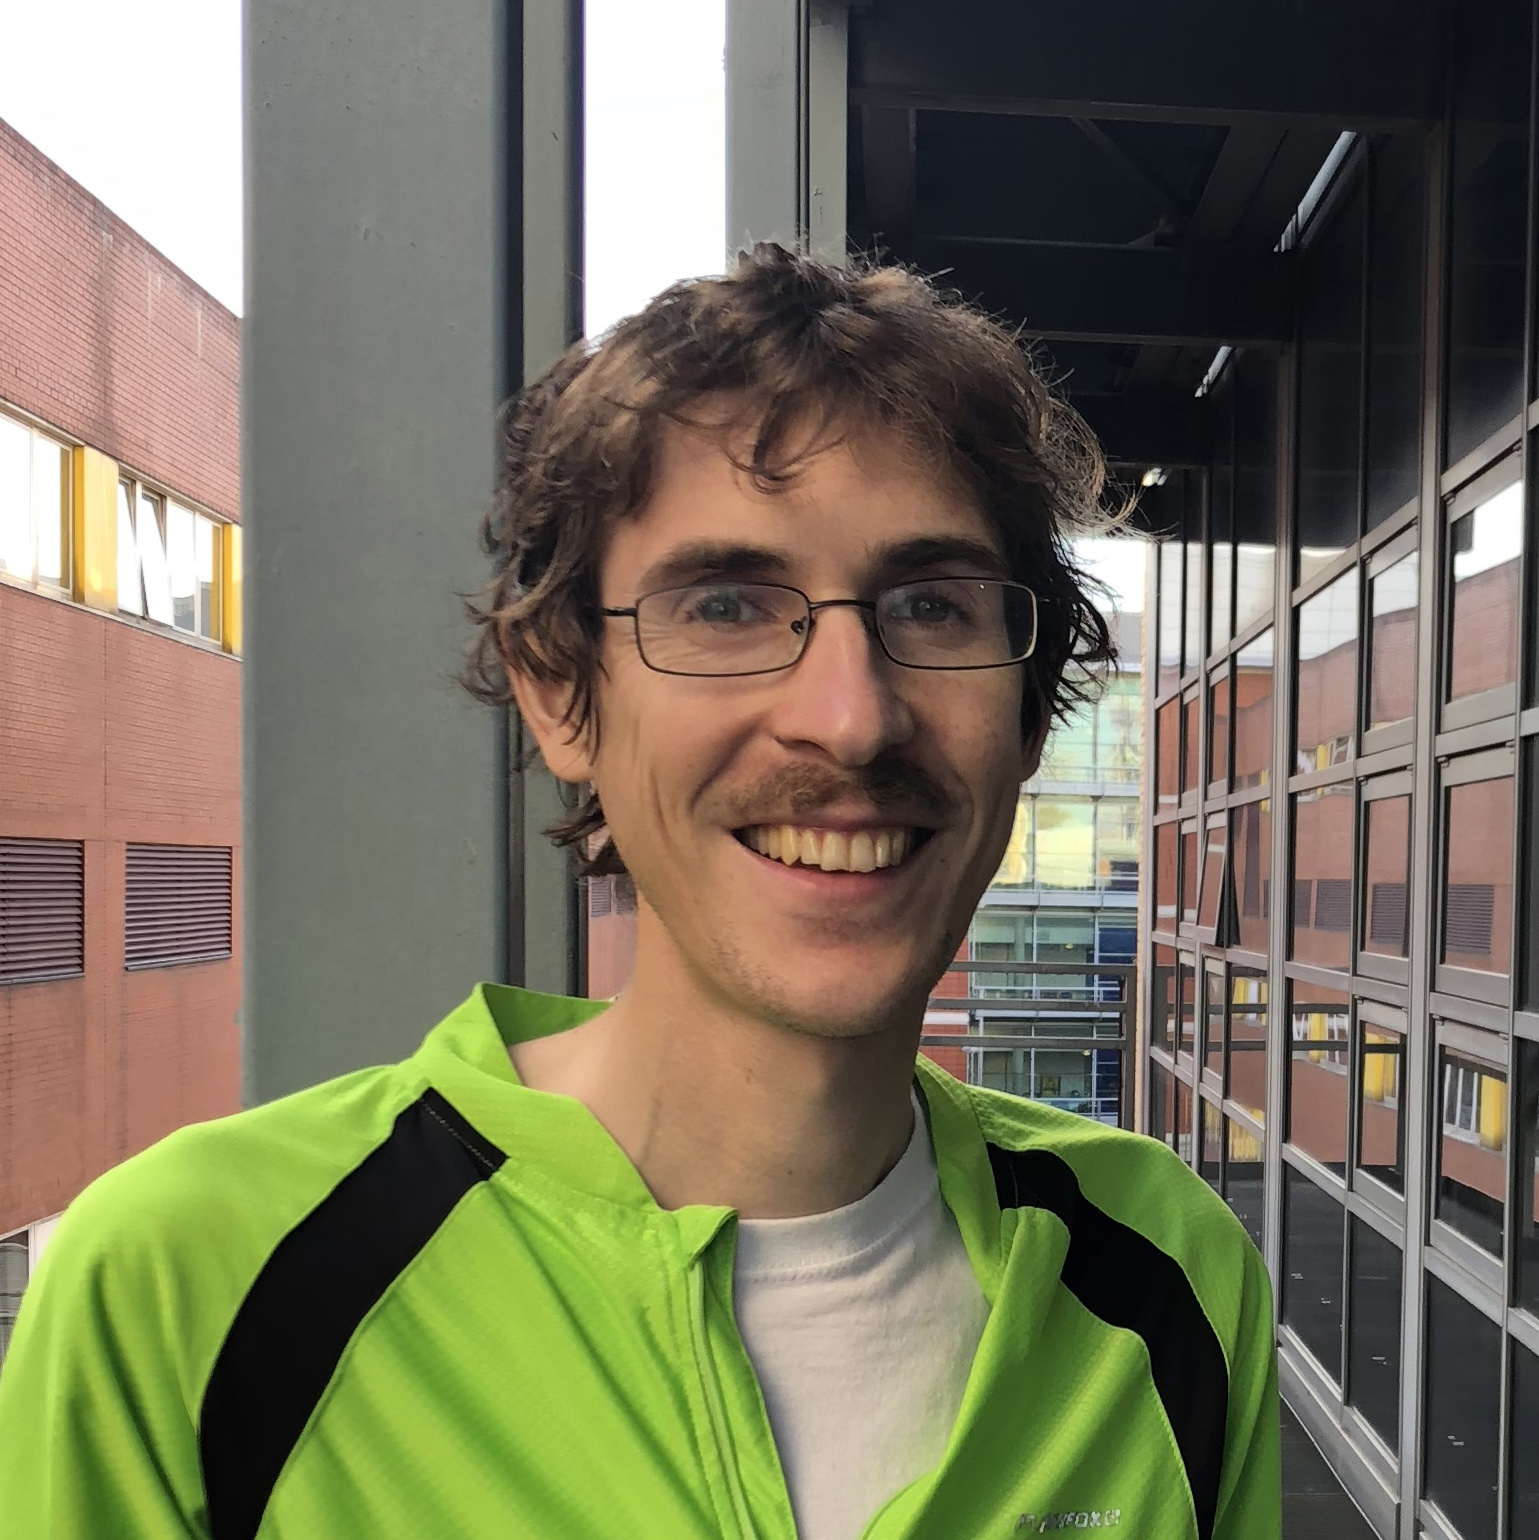 Peter Sarkies elected as EMBO Young Investigator